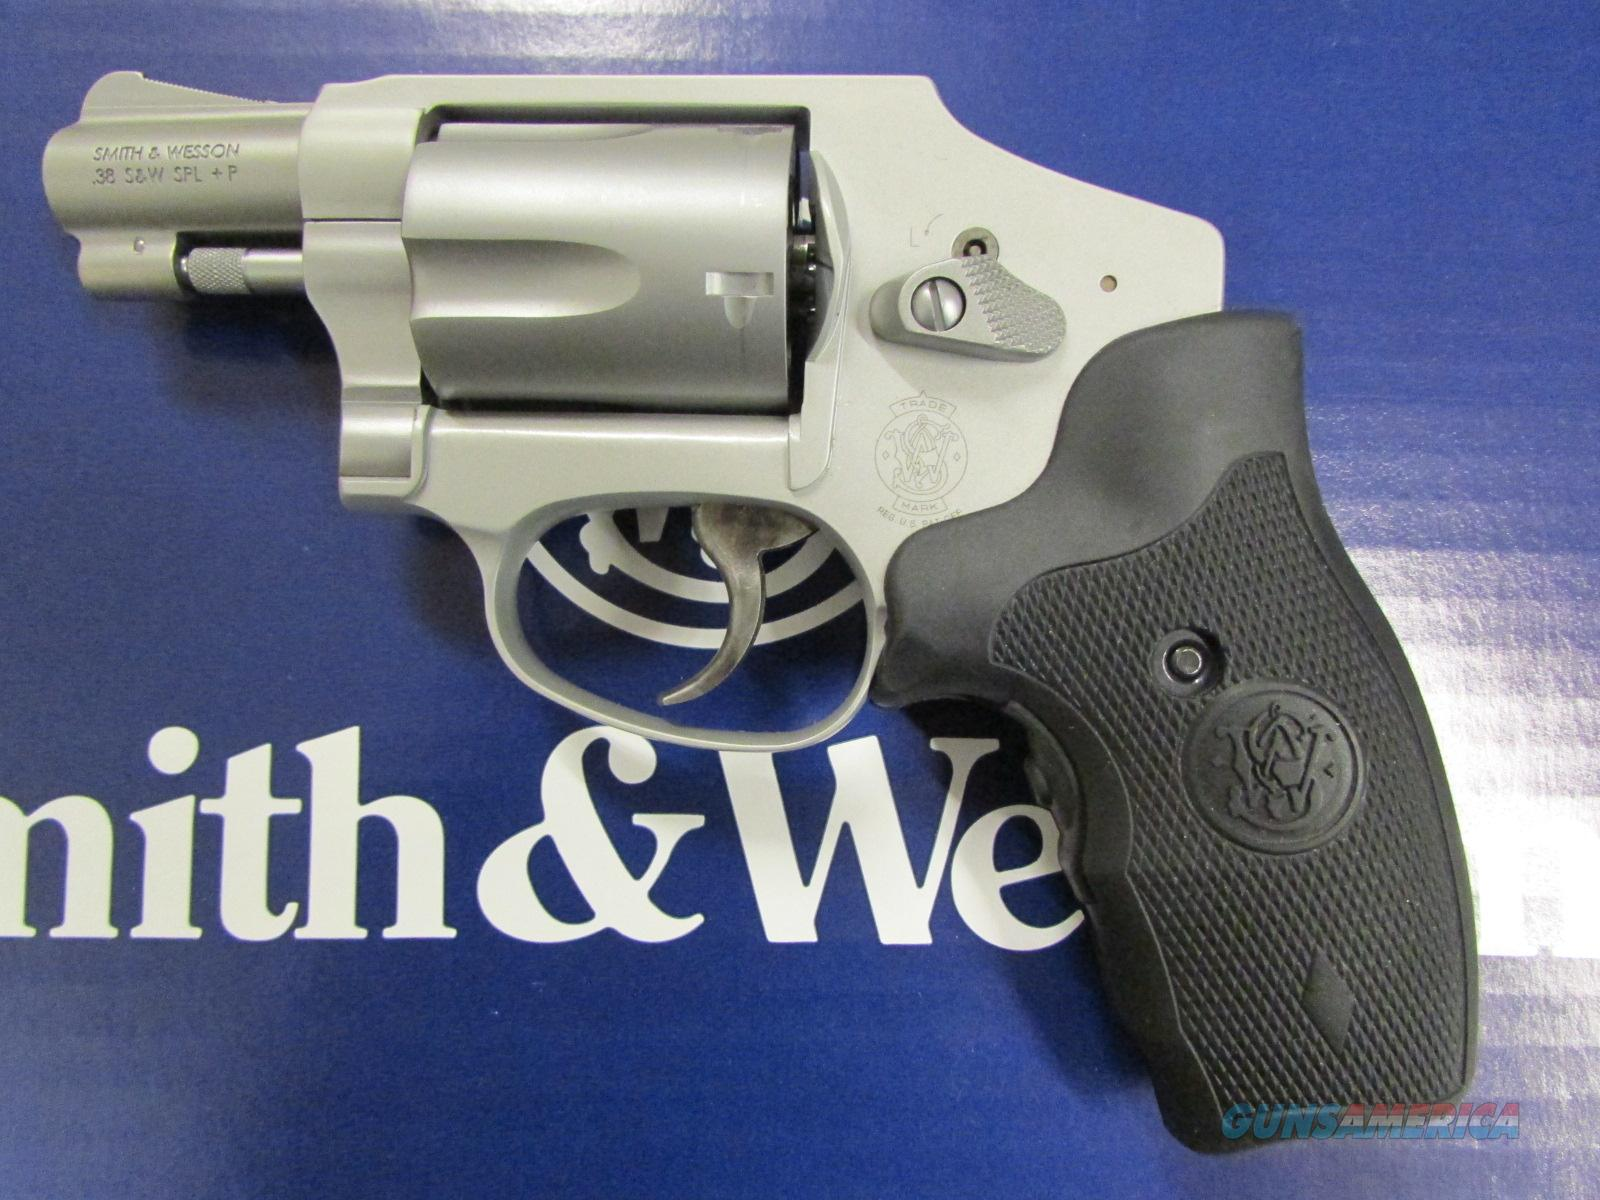 Smith & Wesson Model 642 CT AirWeight .38 SPL Crimson Trace  Guns > Pistols > Smith & Wesson Revolvers > Pocket Pistols